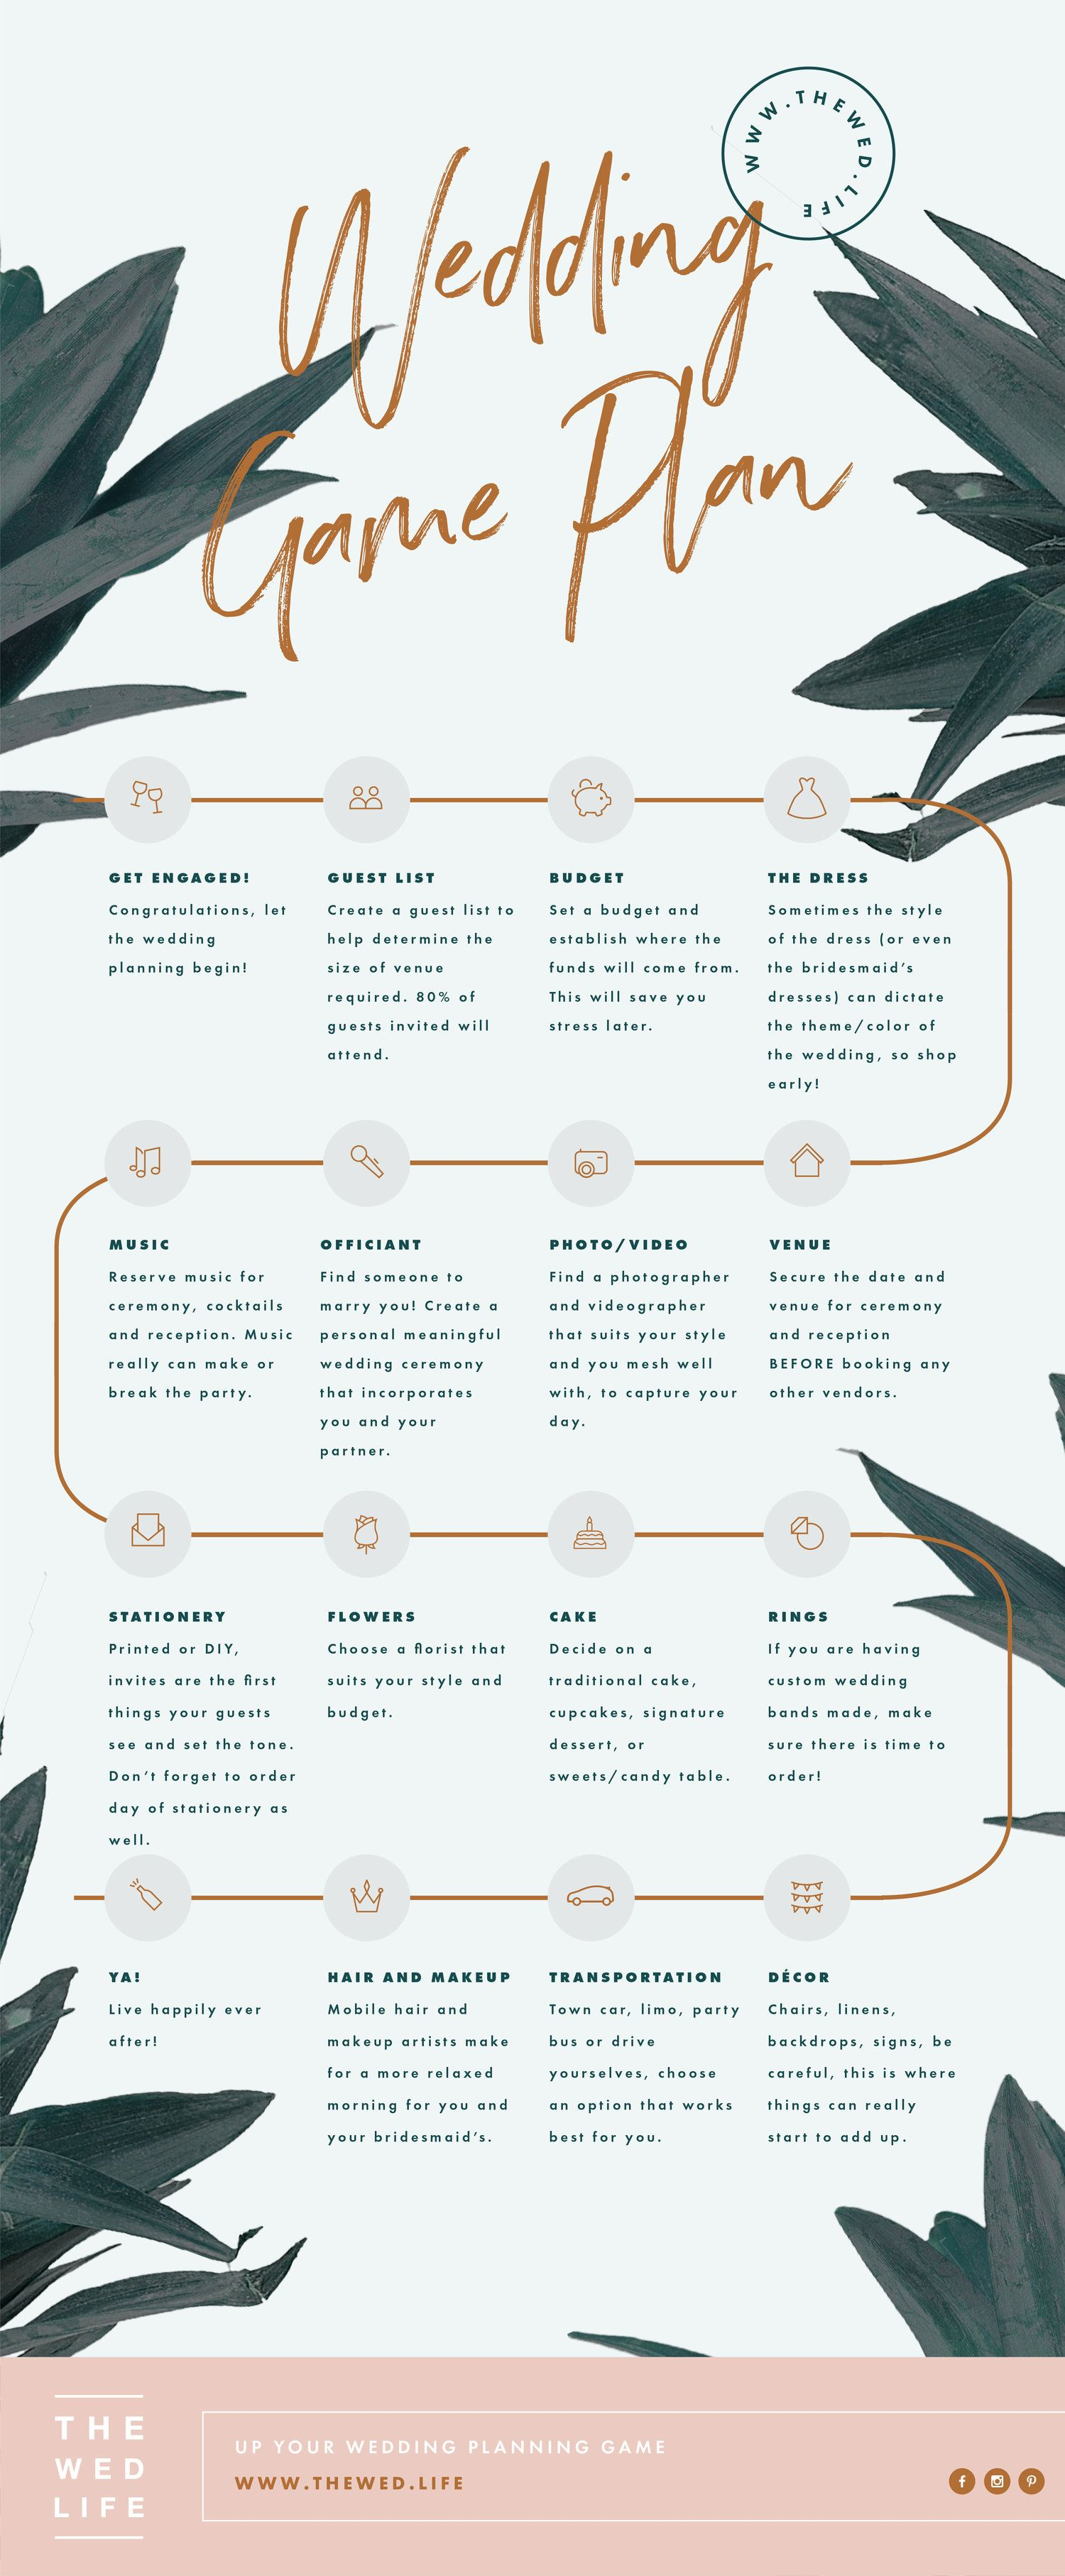 Tips For Creating The Ultimate Wedding Game Plan  Timeline